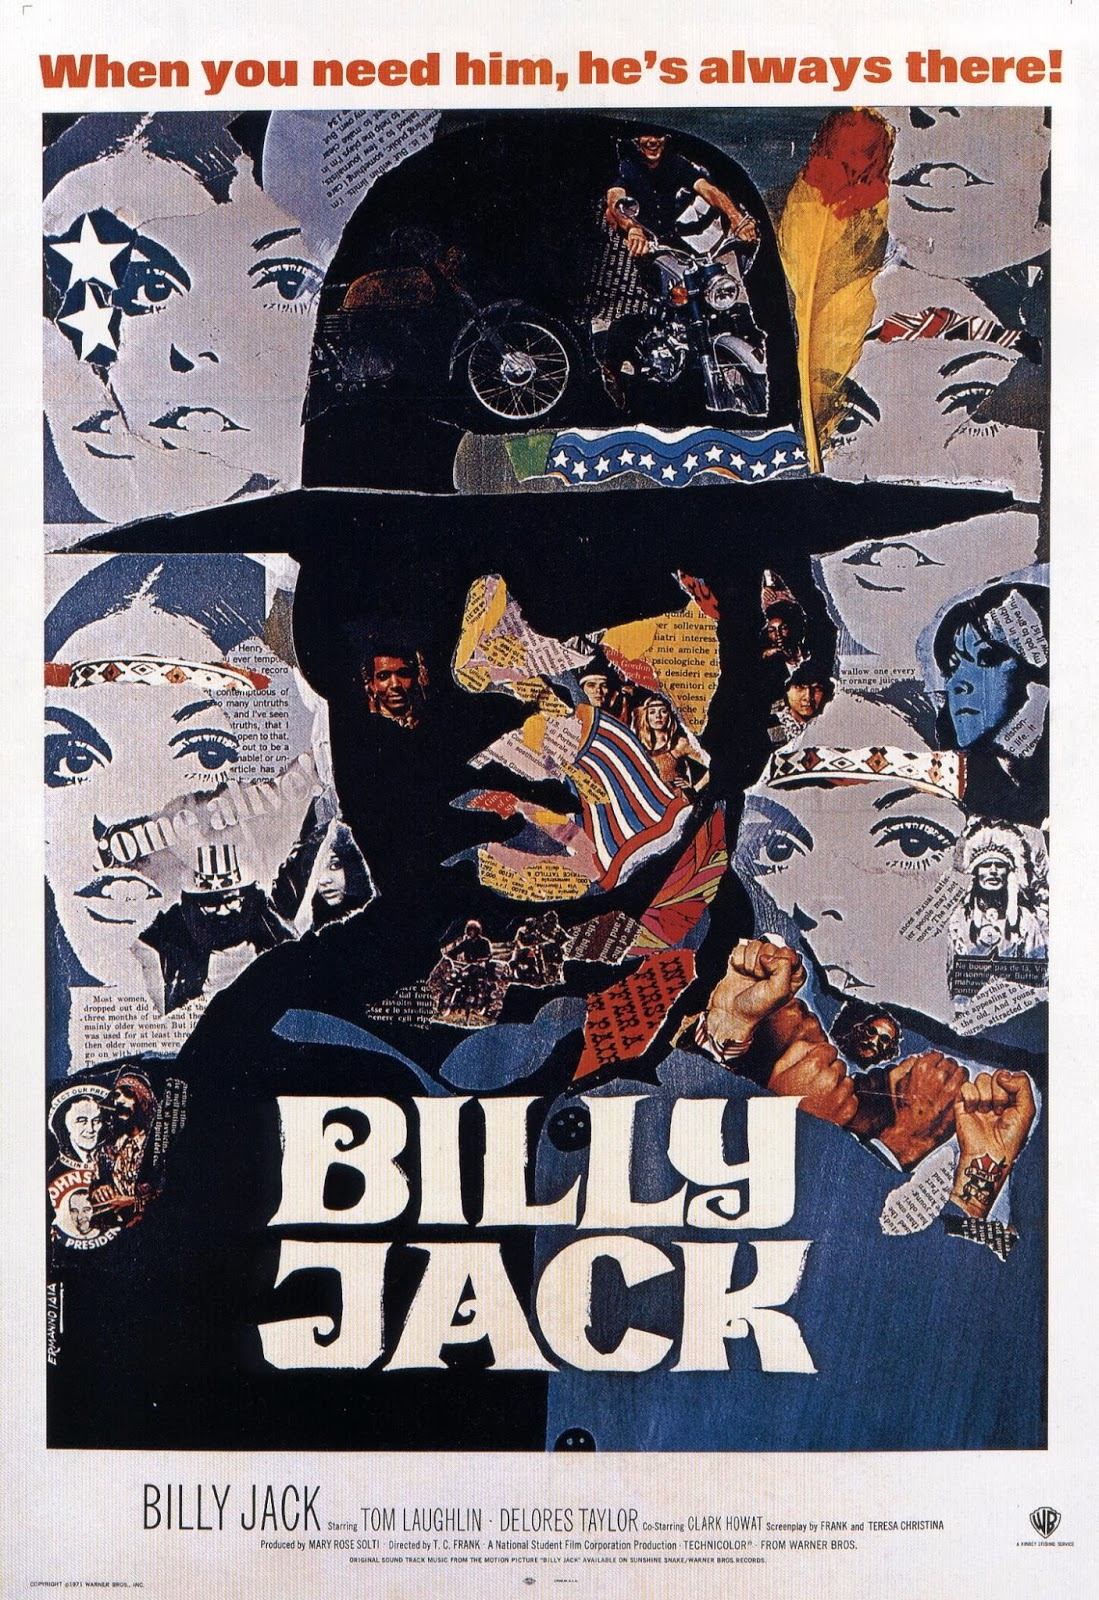 who played billy jack in the movie billy jack